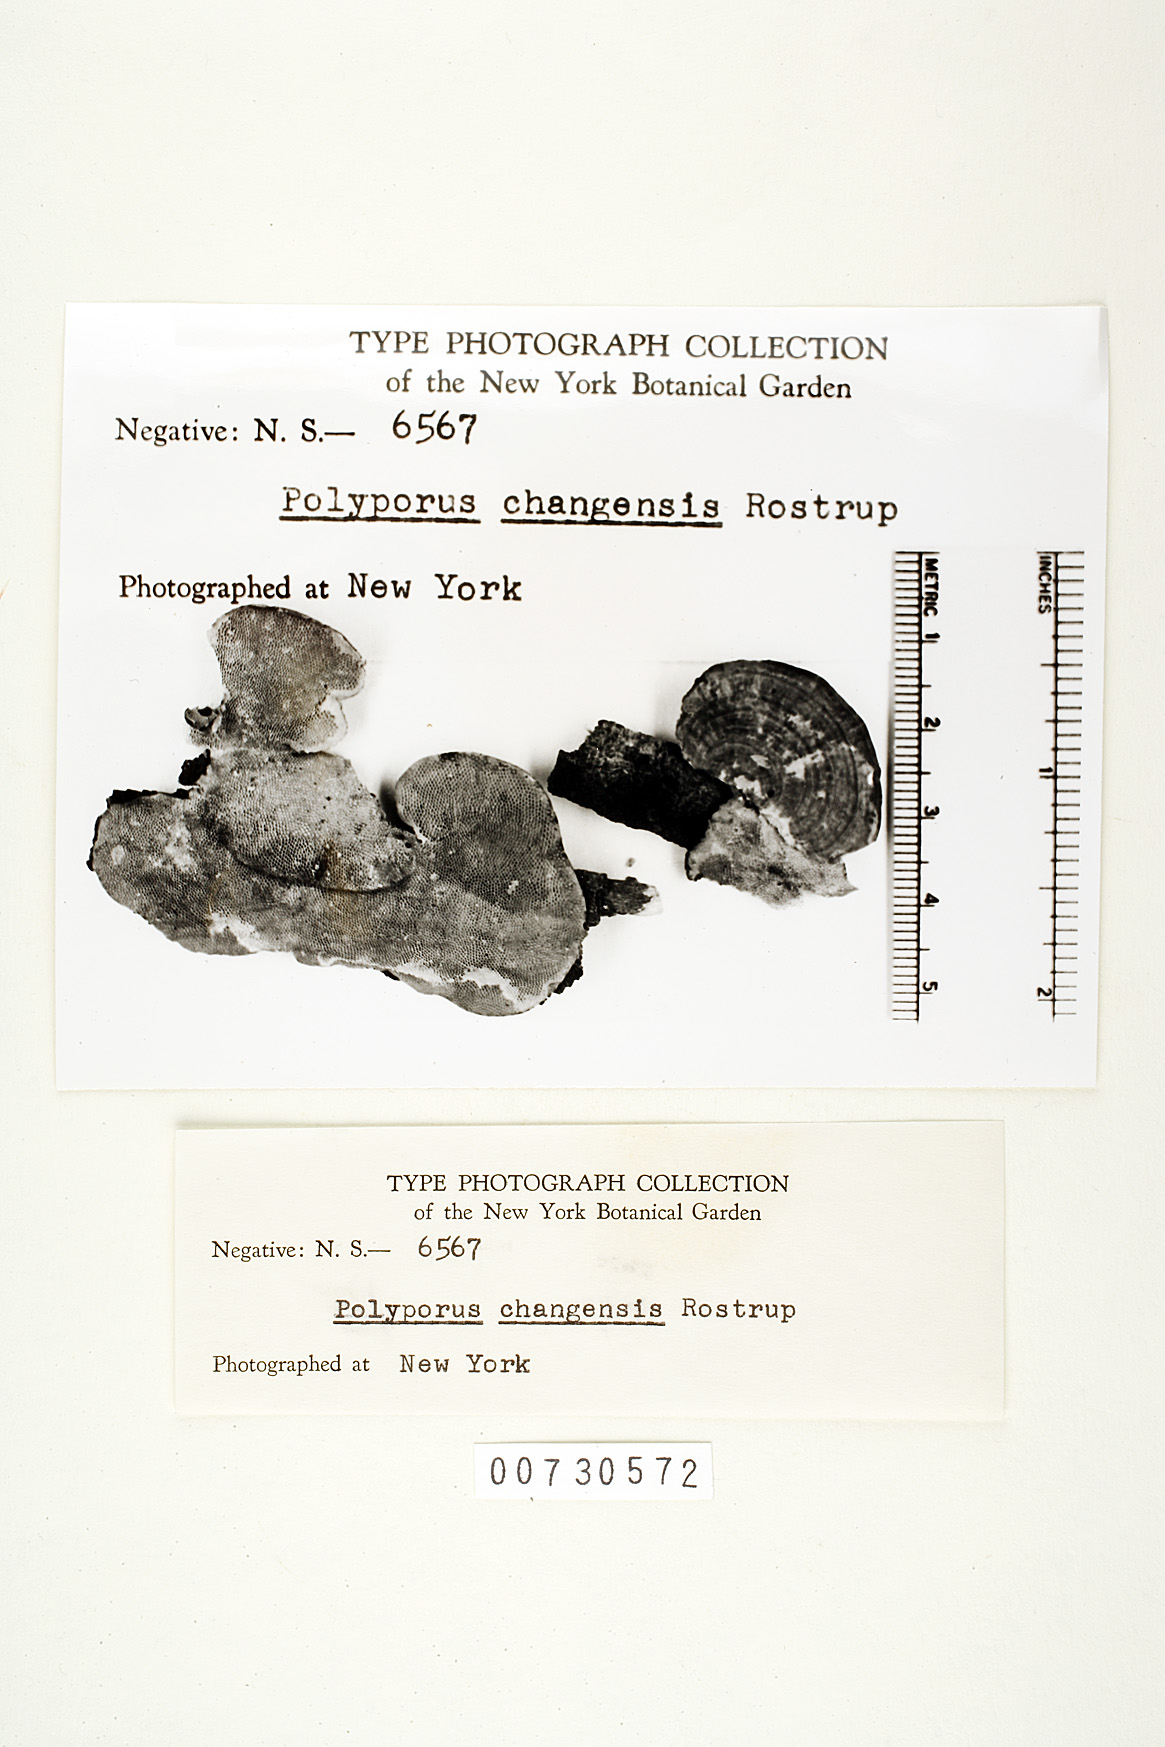 Image of Polyporus changensis